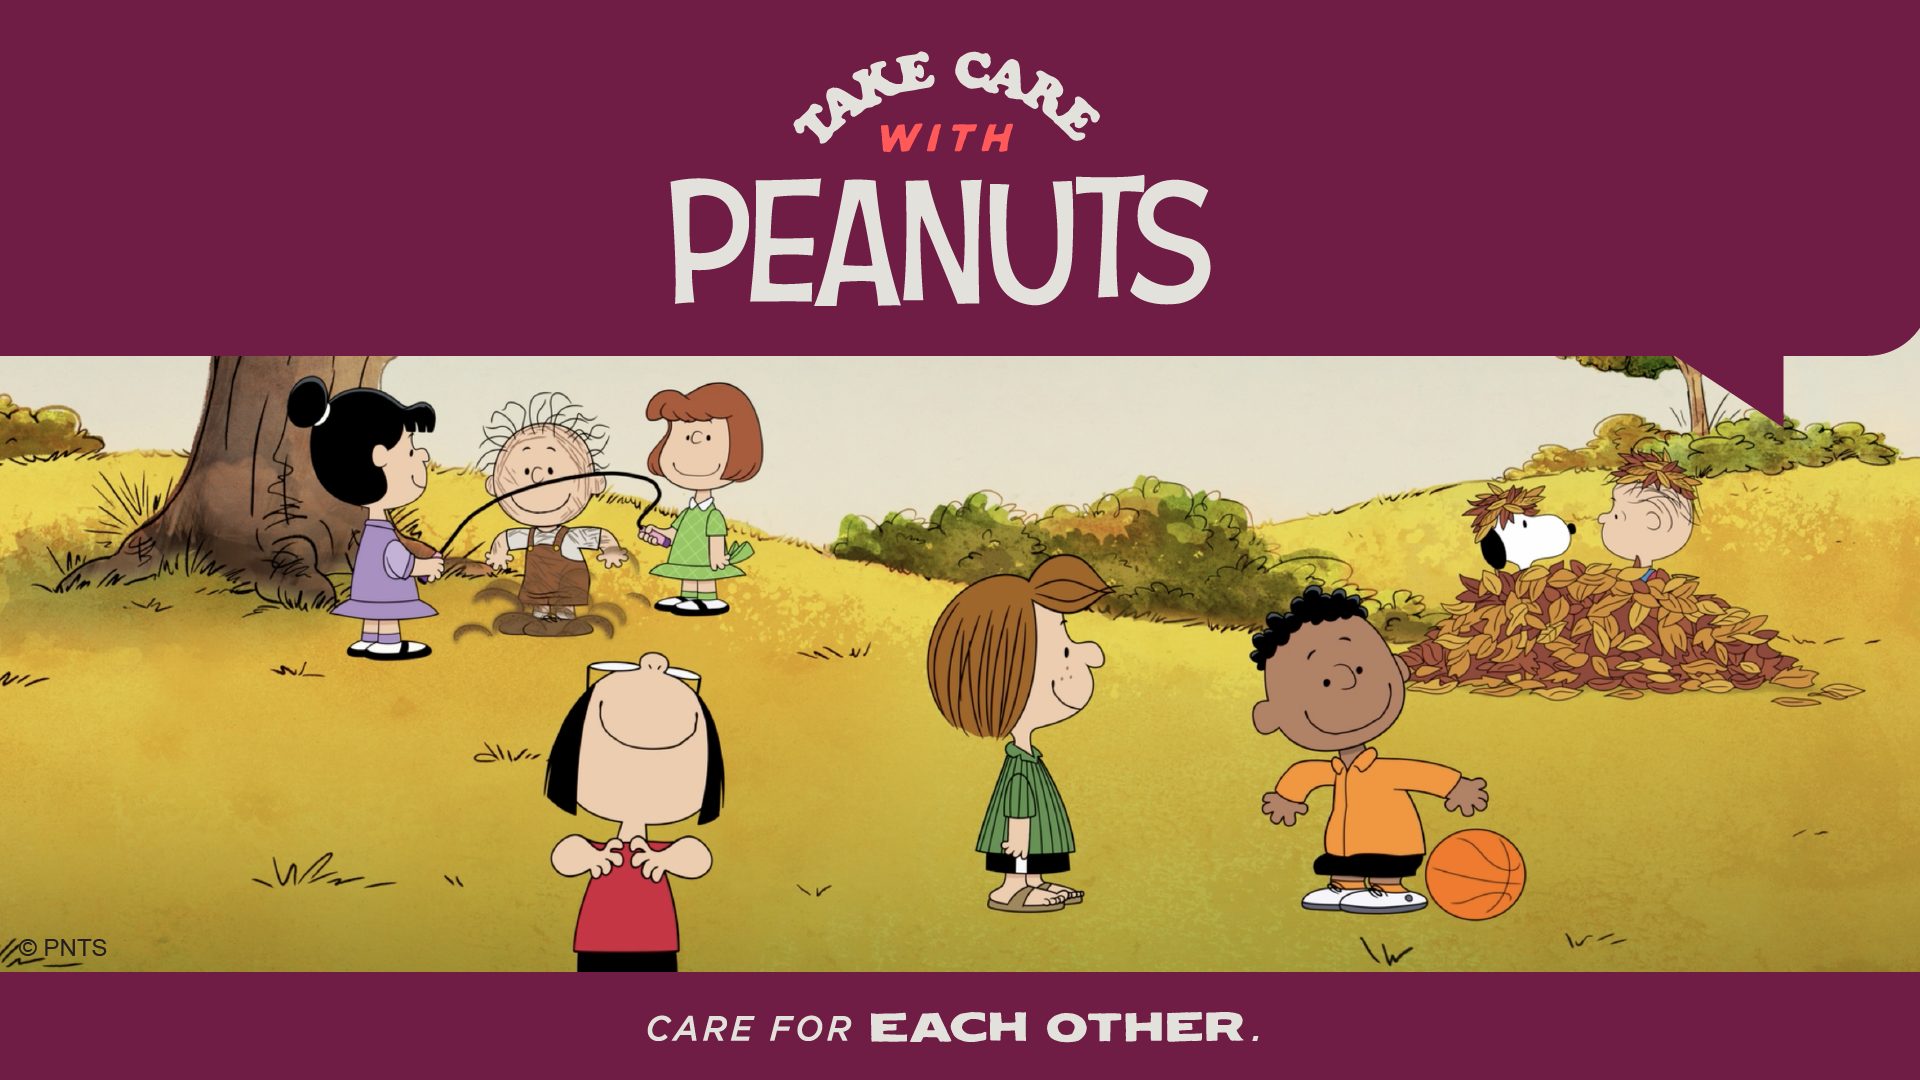 Kids playing in a field with the words Take Care with Peanuts and Care for Each Other